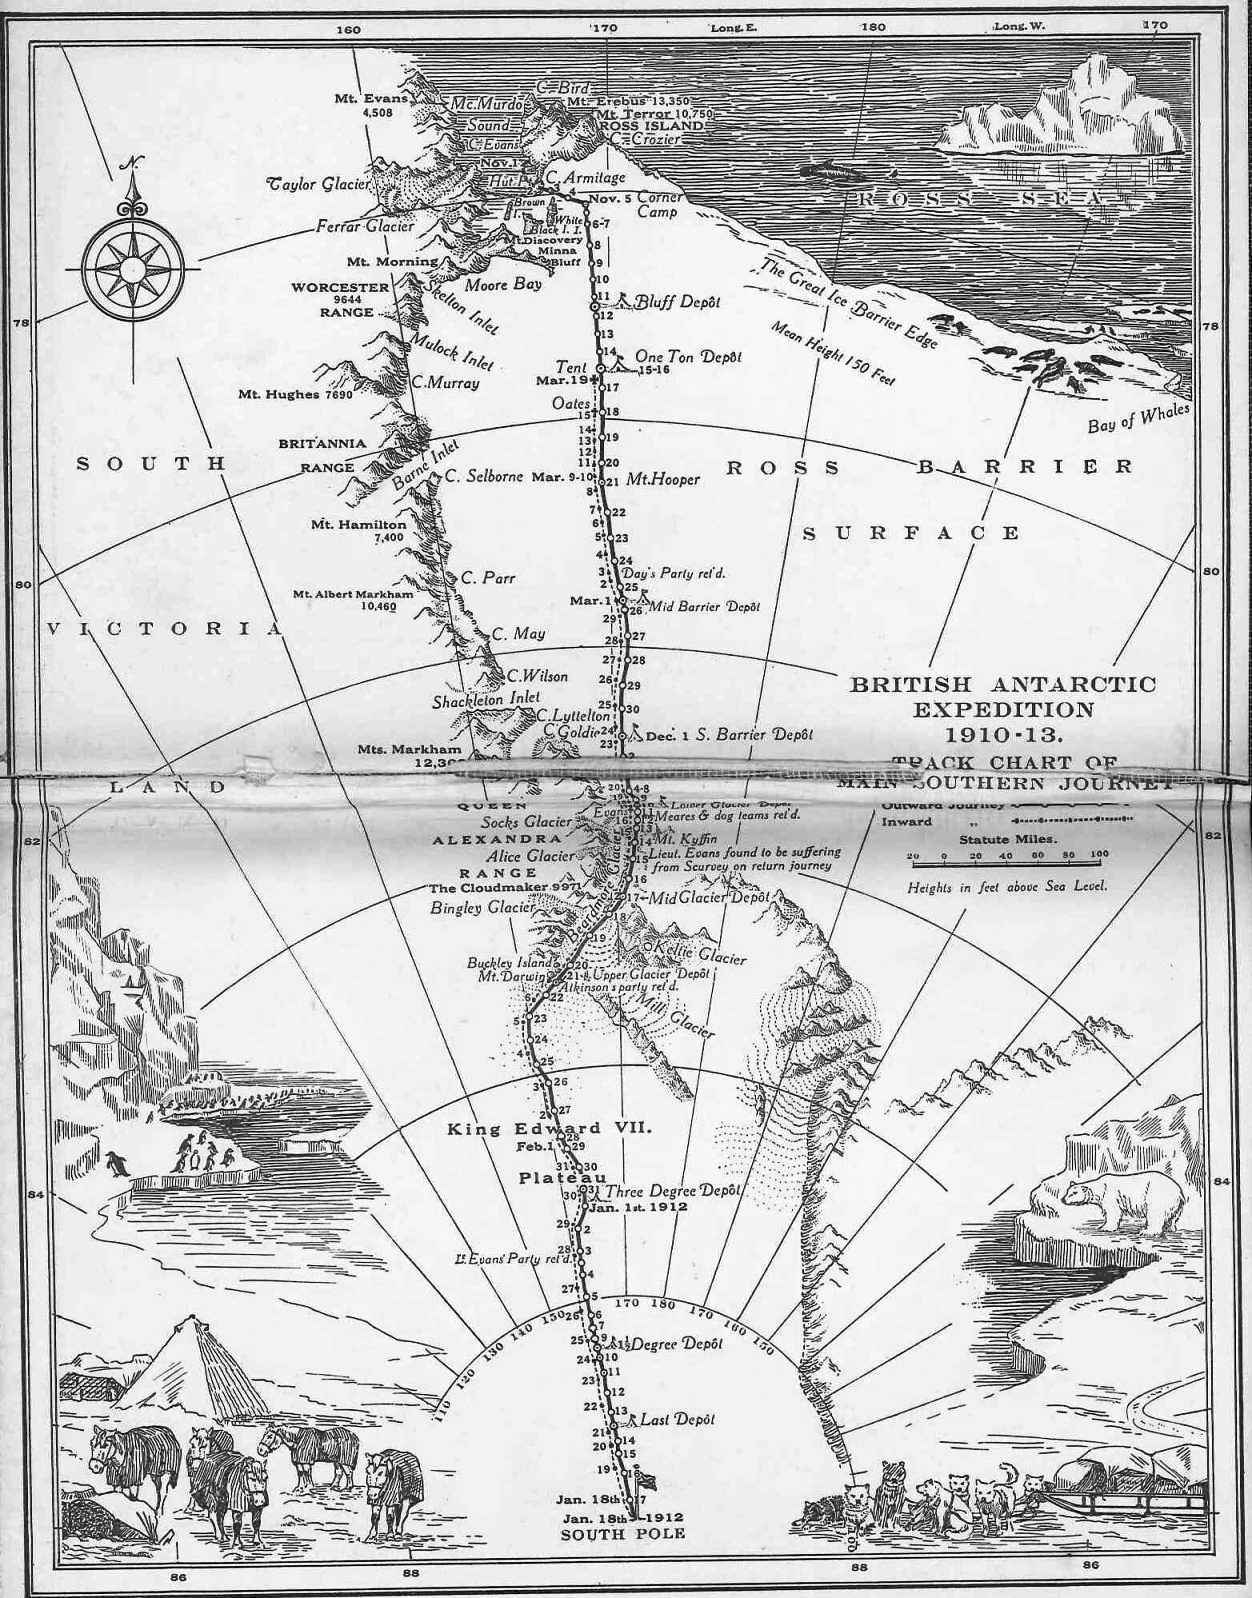 http://commons.wikimedia.org/wiki/File%3ATerra-Nova-Expedition_Map_of_the_Southern_Journey.jpg